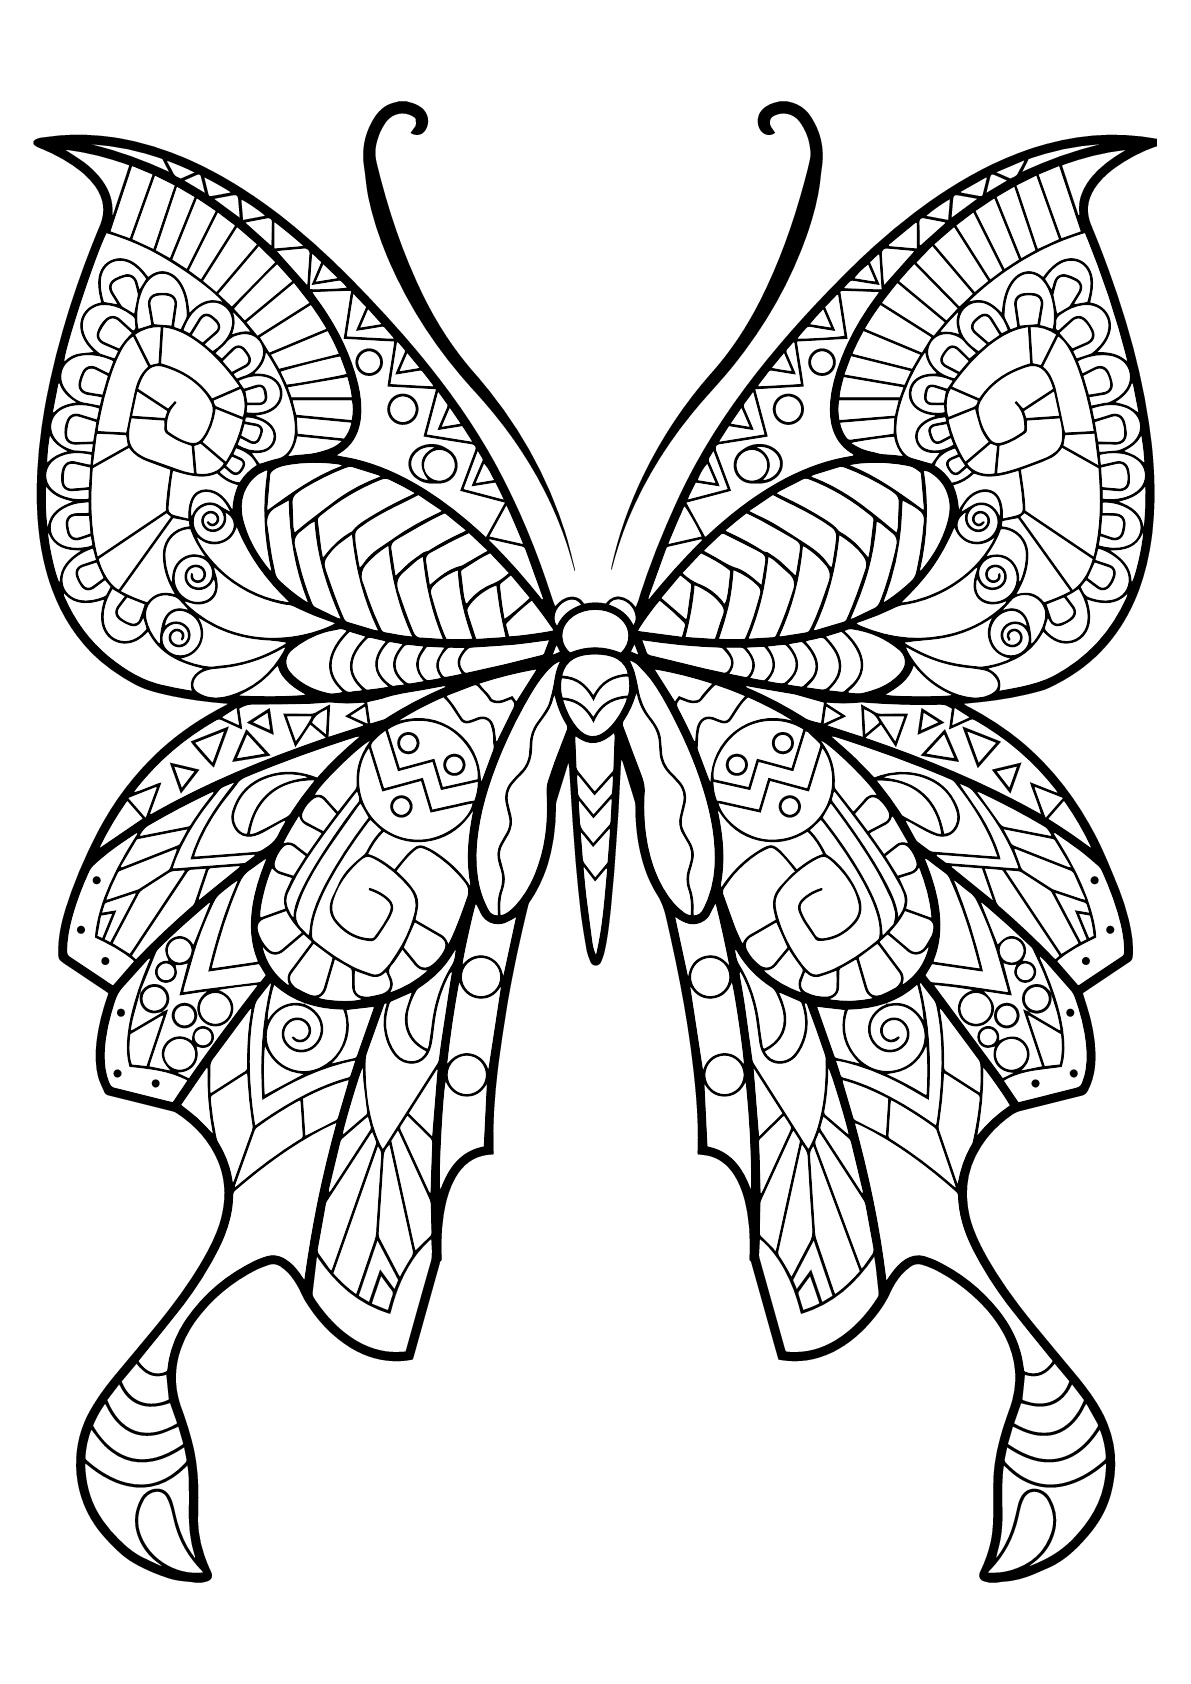 coloring images of butterfly free printable butterfly coloring pages for kids images coloring of butterfly